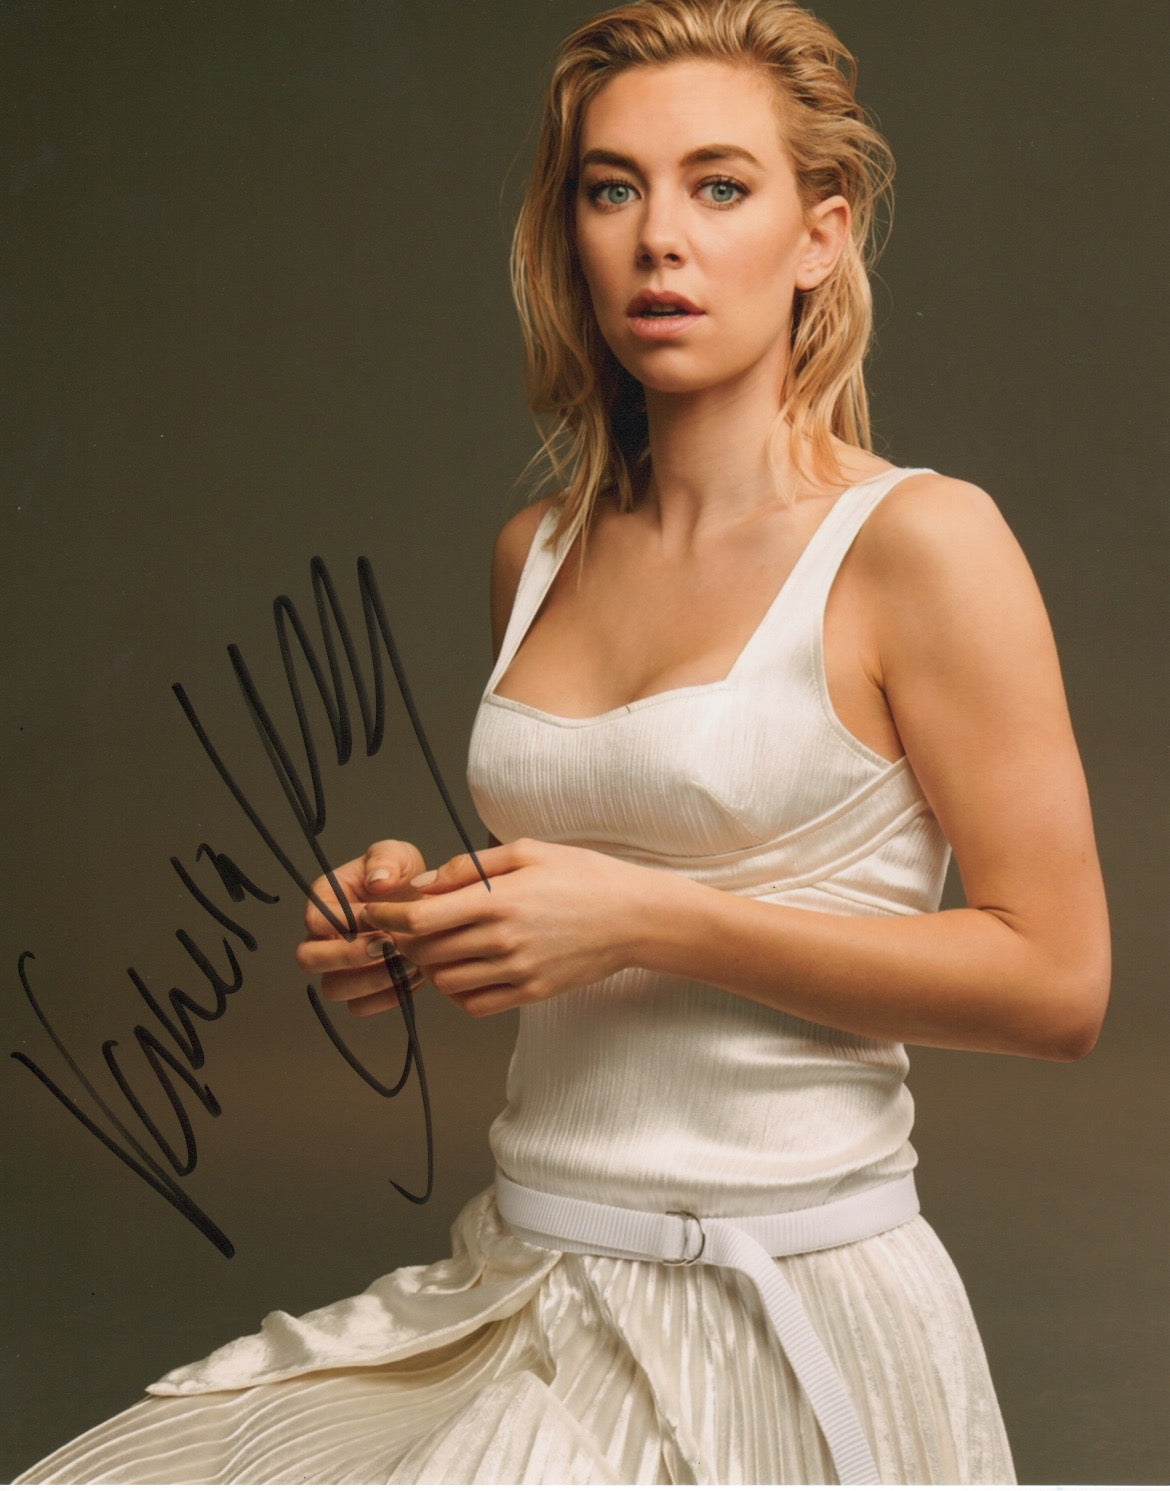 Vanessa Kirby Sexy Signed Autograph 8x10 Photo #10